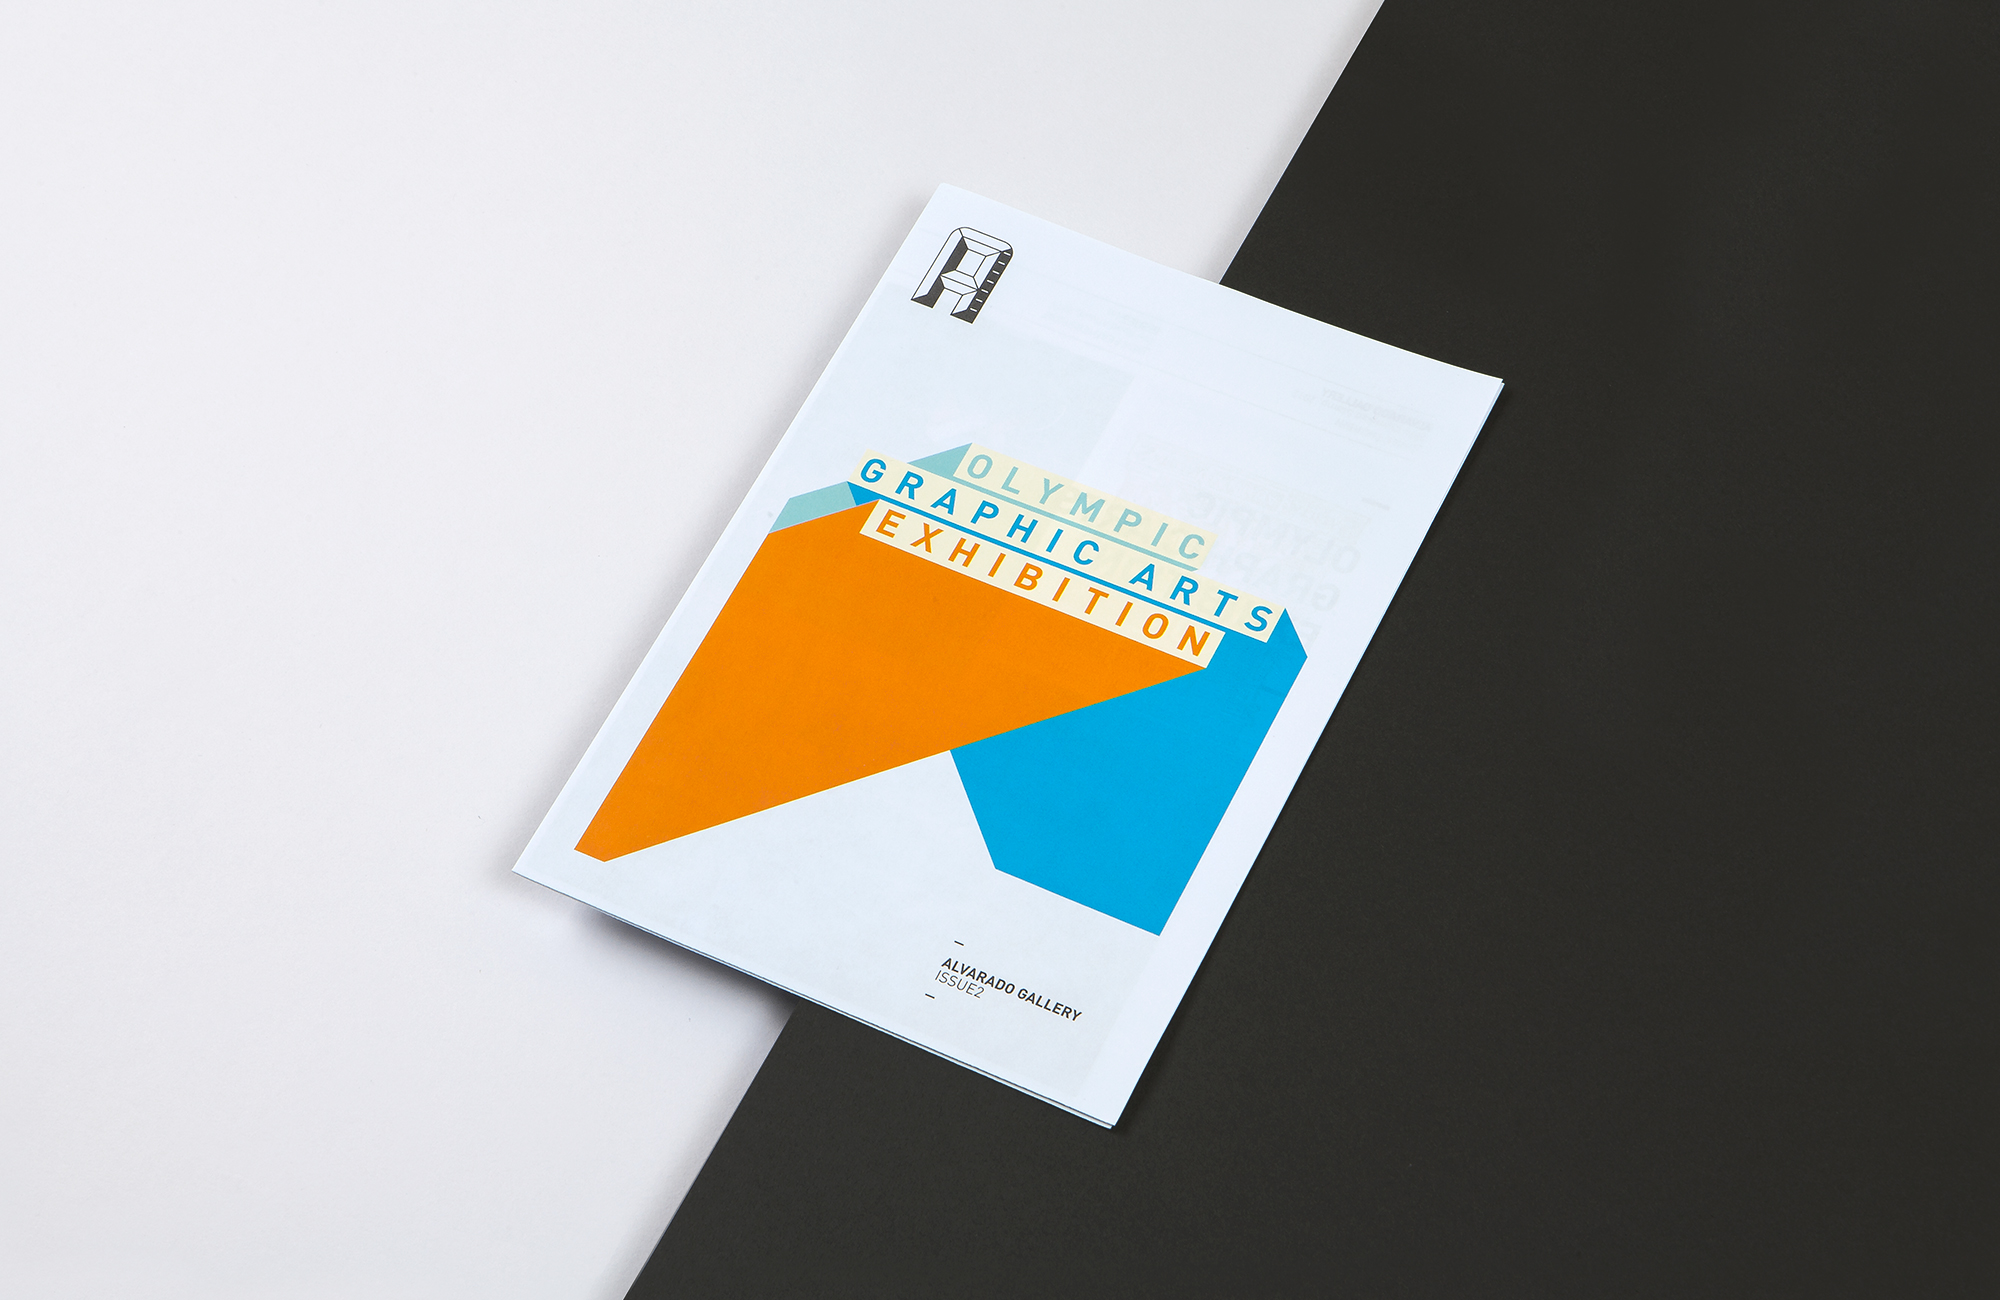 All Works Co._Graphic_Design_Studio_London_OlympicGraphicsArtsExhibition_Campaign_Print_Catalogue/Poster_01